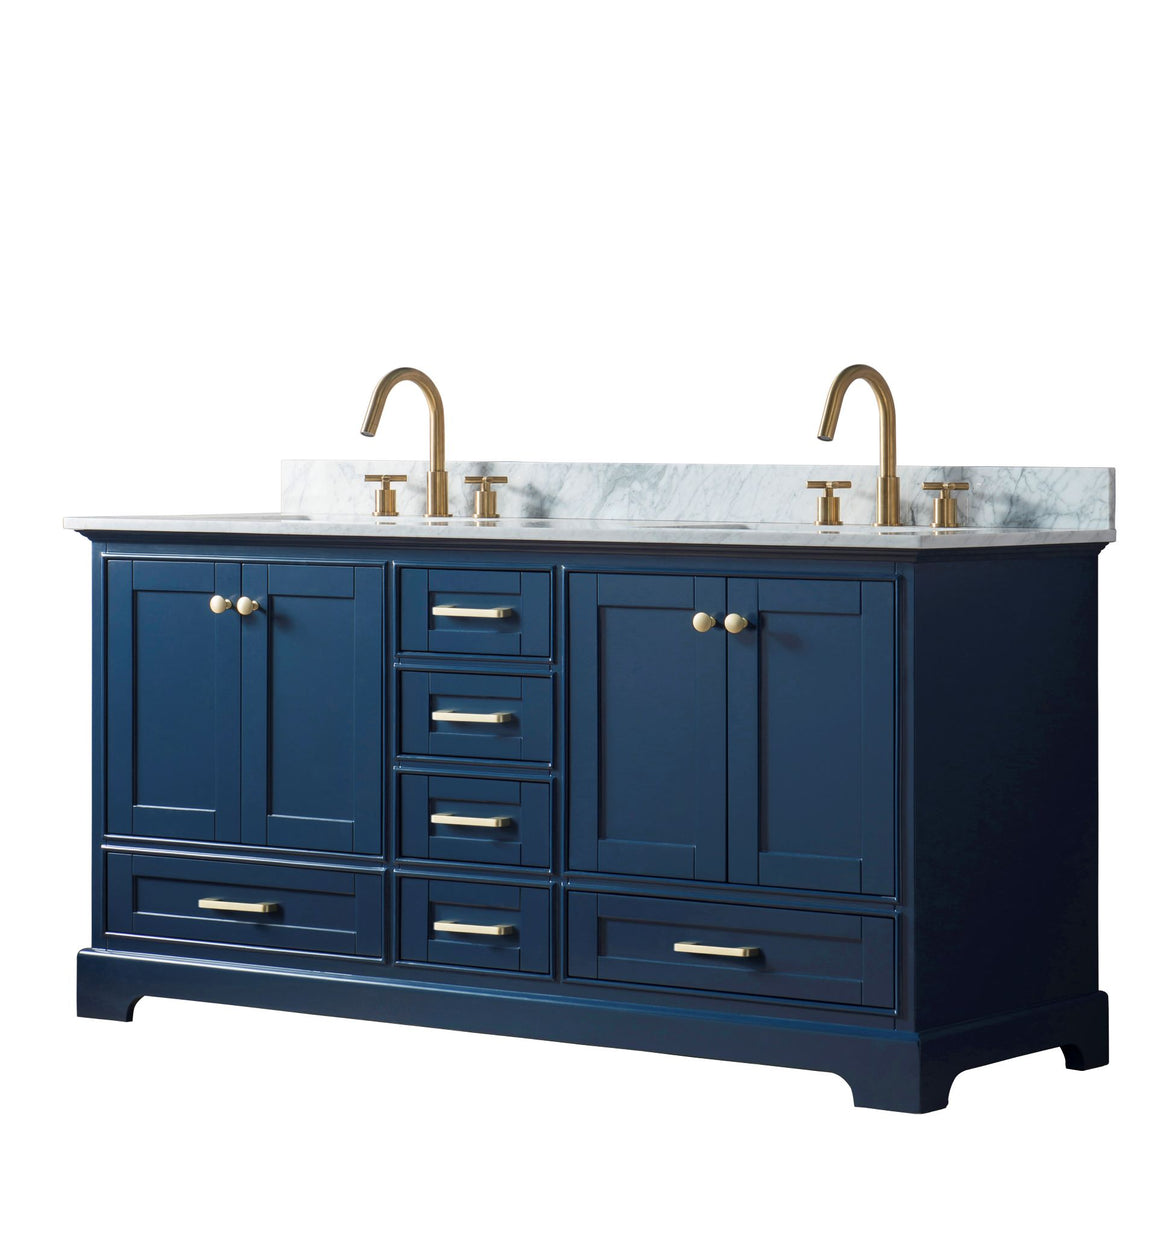 "Yazmin 72"" Double Bathroom Vanity Set in Blue"